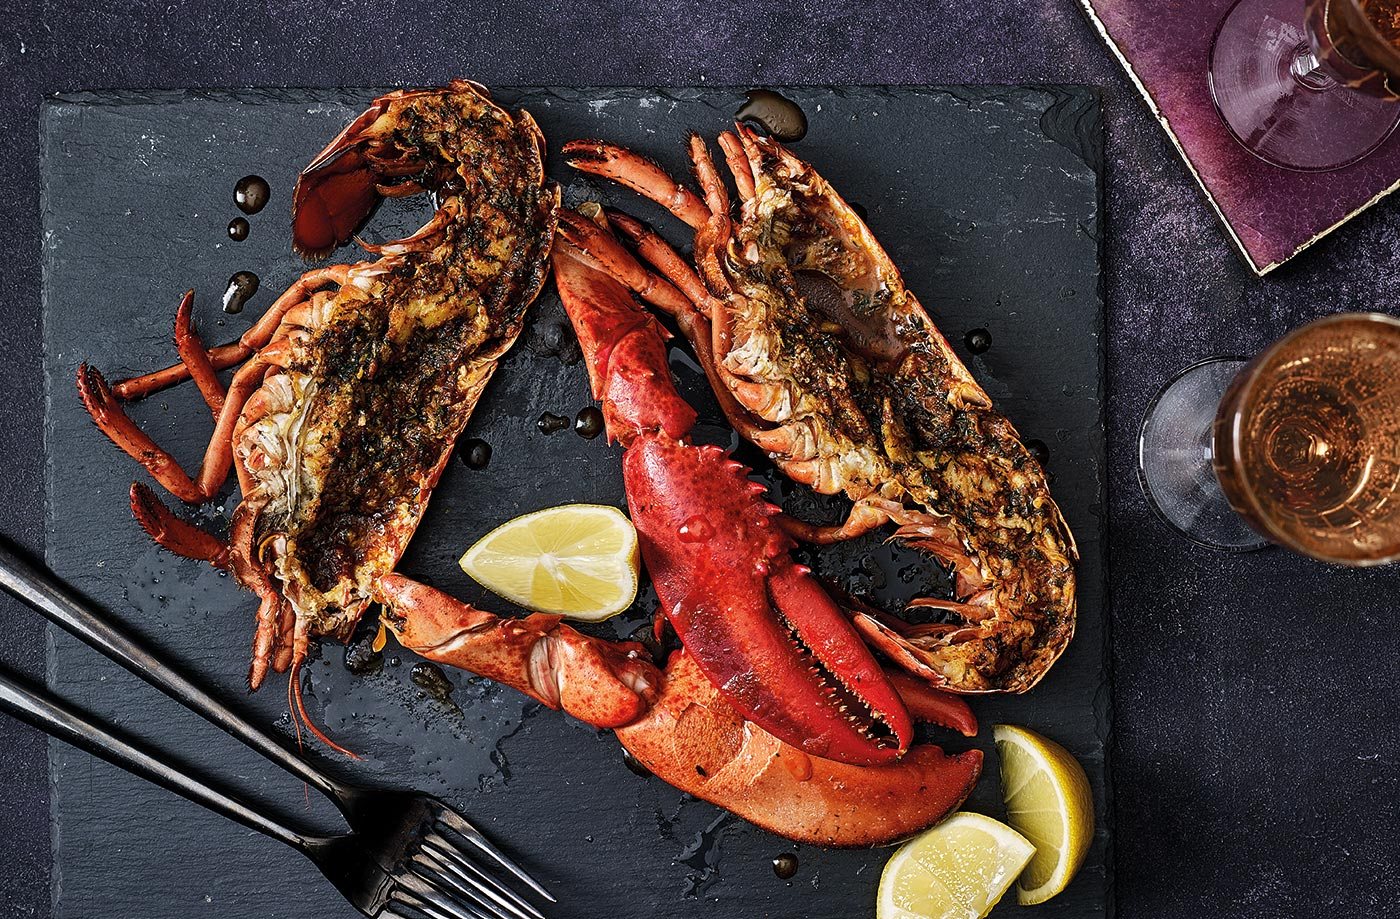 Grilled lobster with lemon and paprika butter